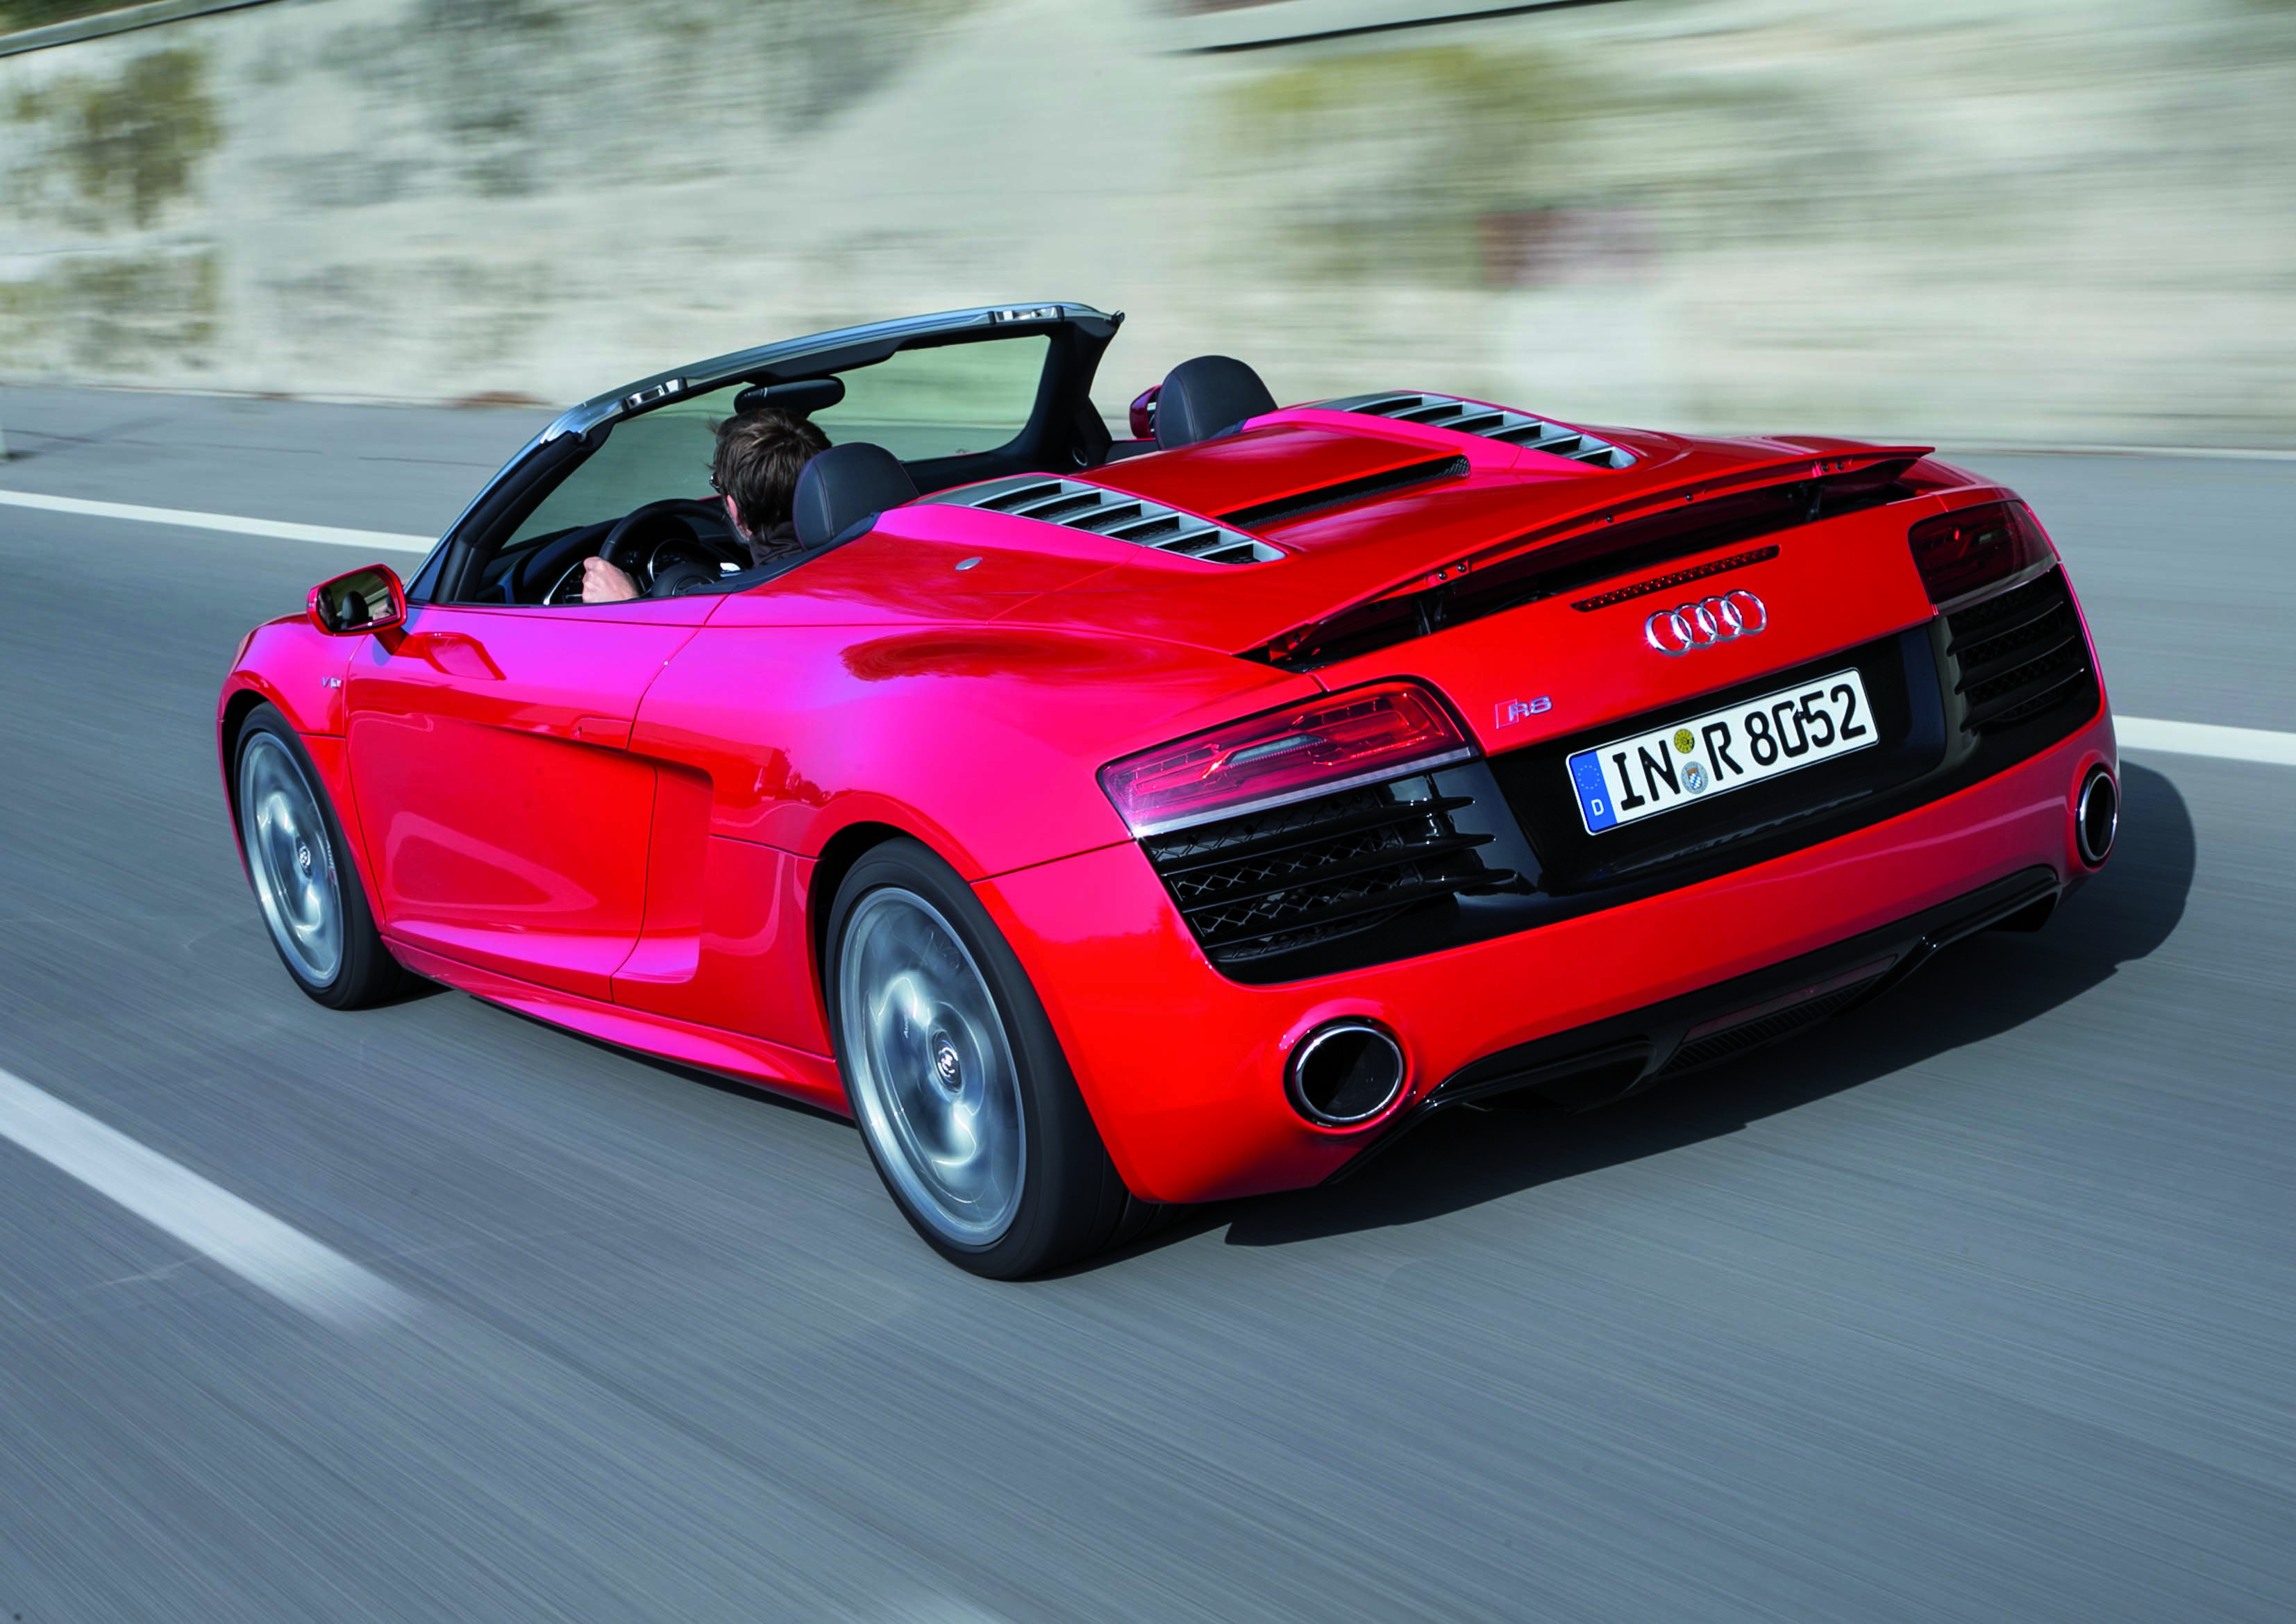 2014 - 2015 audi r8 spyder review - top speed